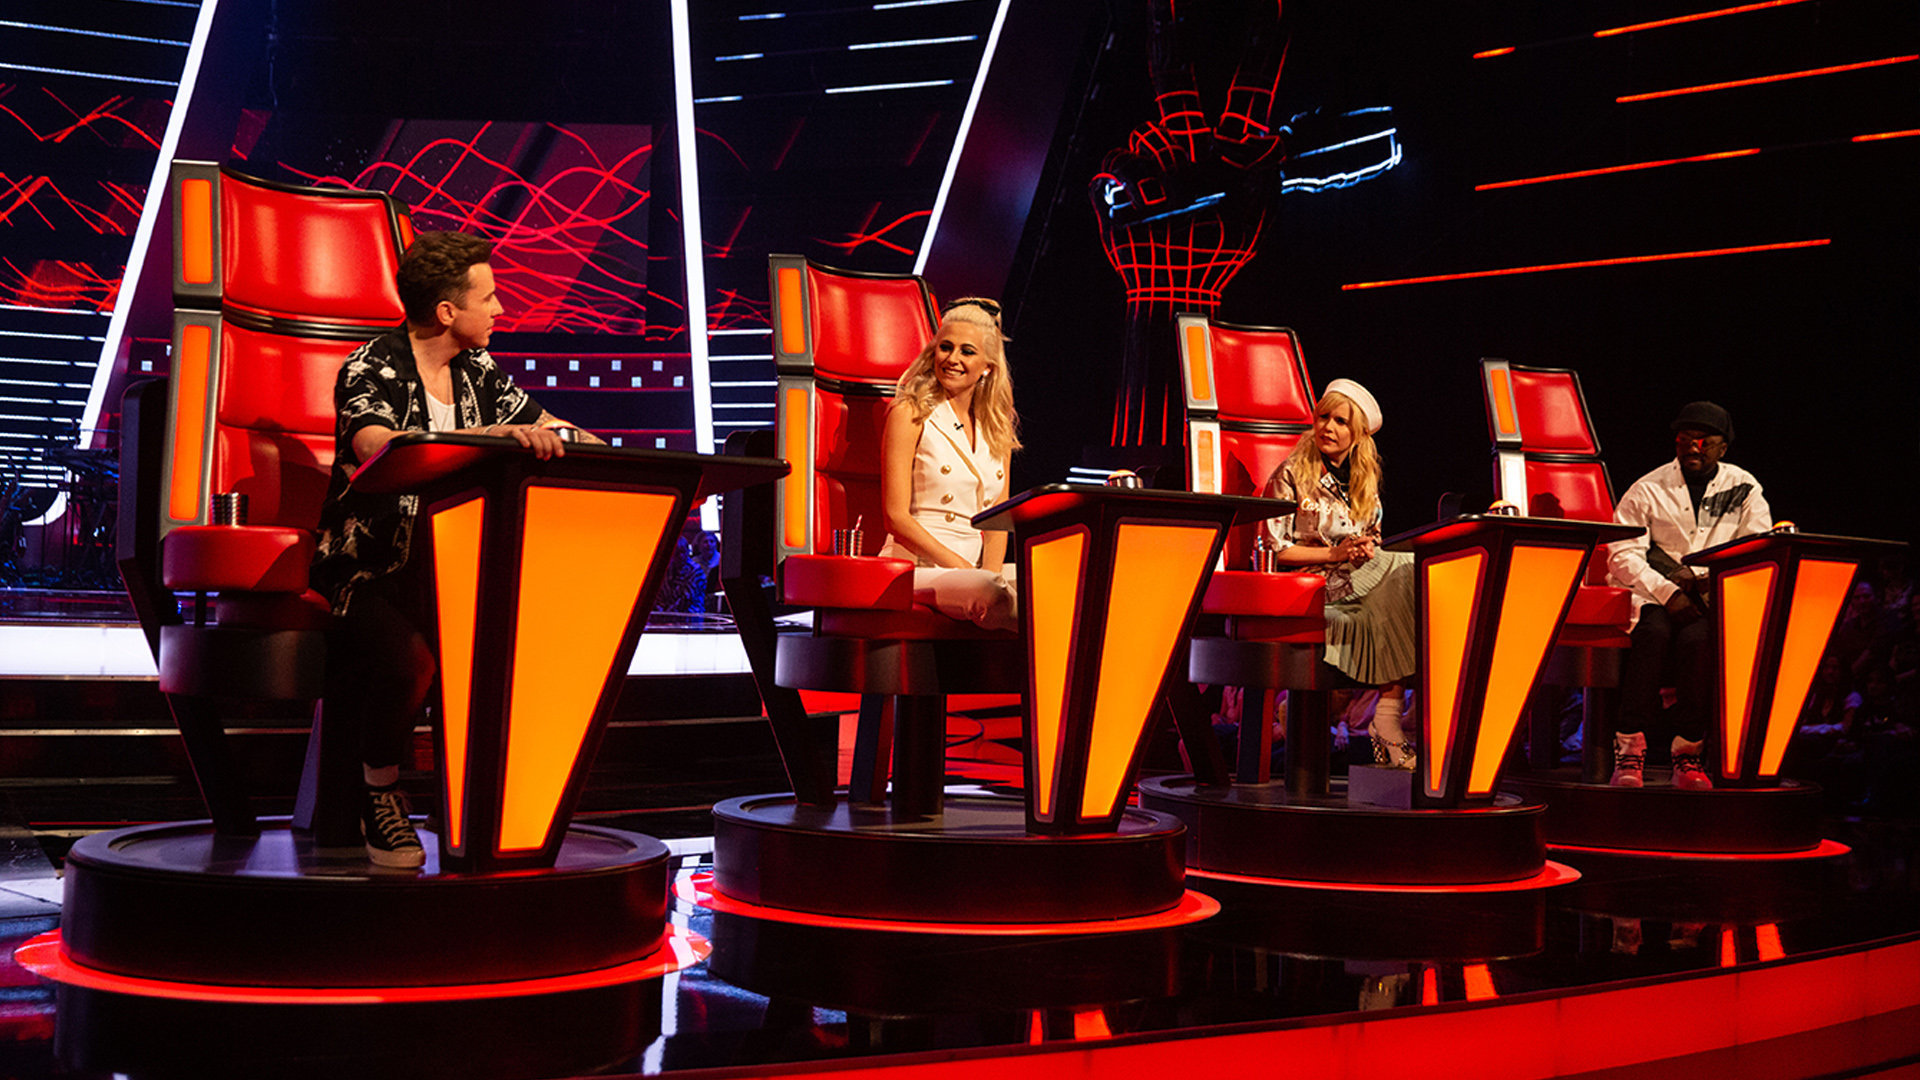 Maybe you would like to learn more about one of these? Apply for The Voice Kids UK 2021! | The Voice Kids UK